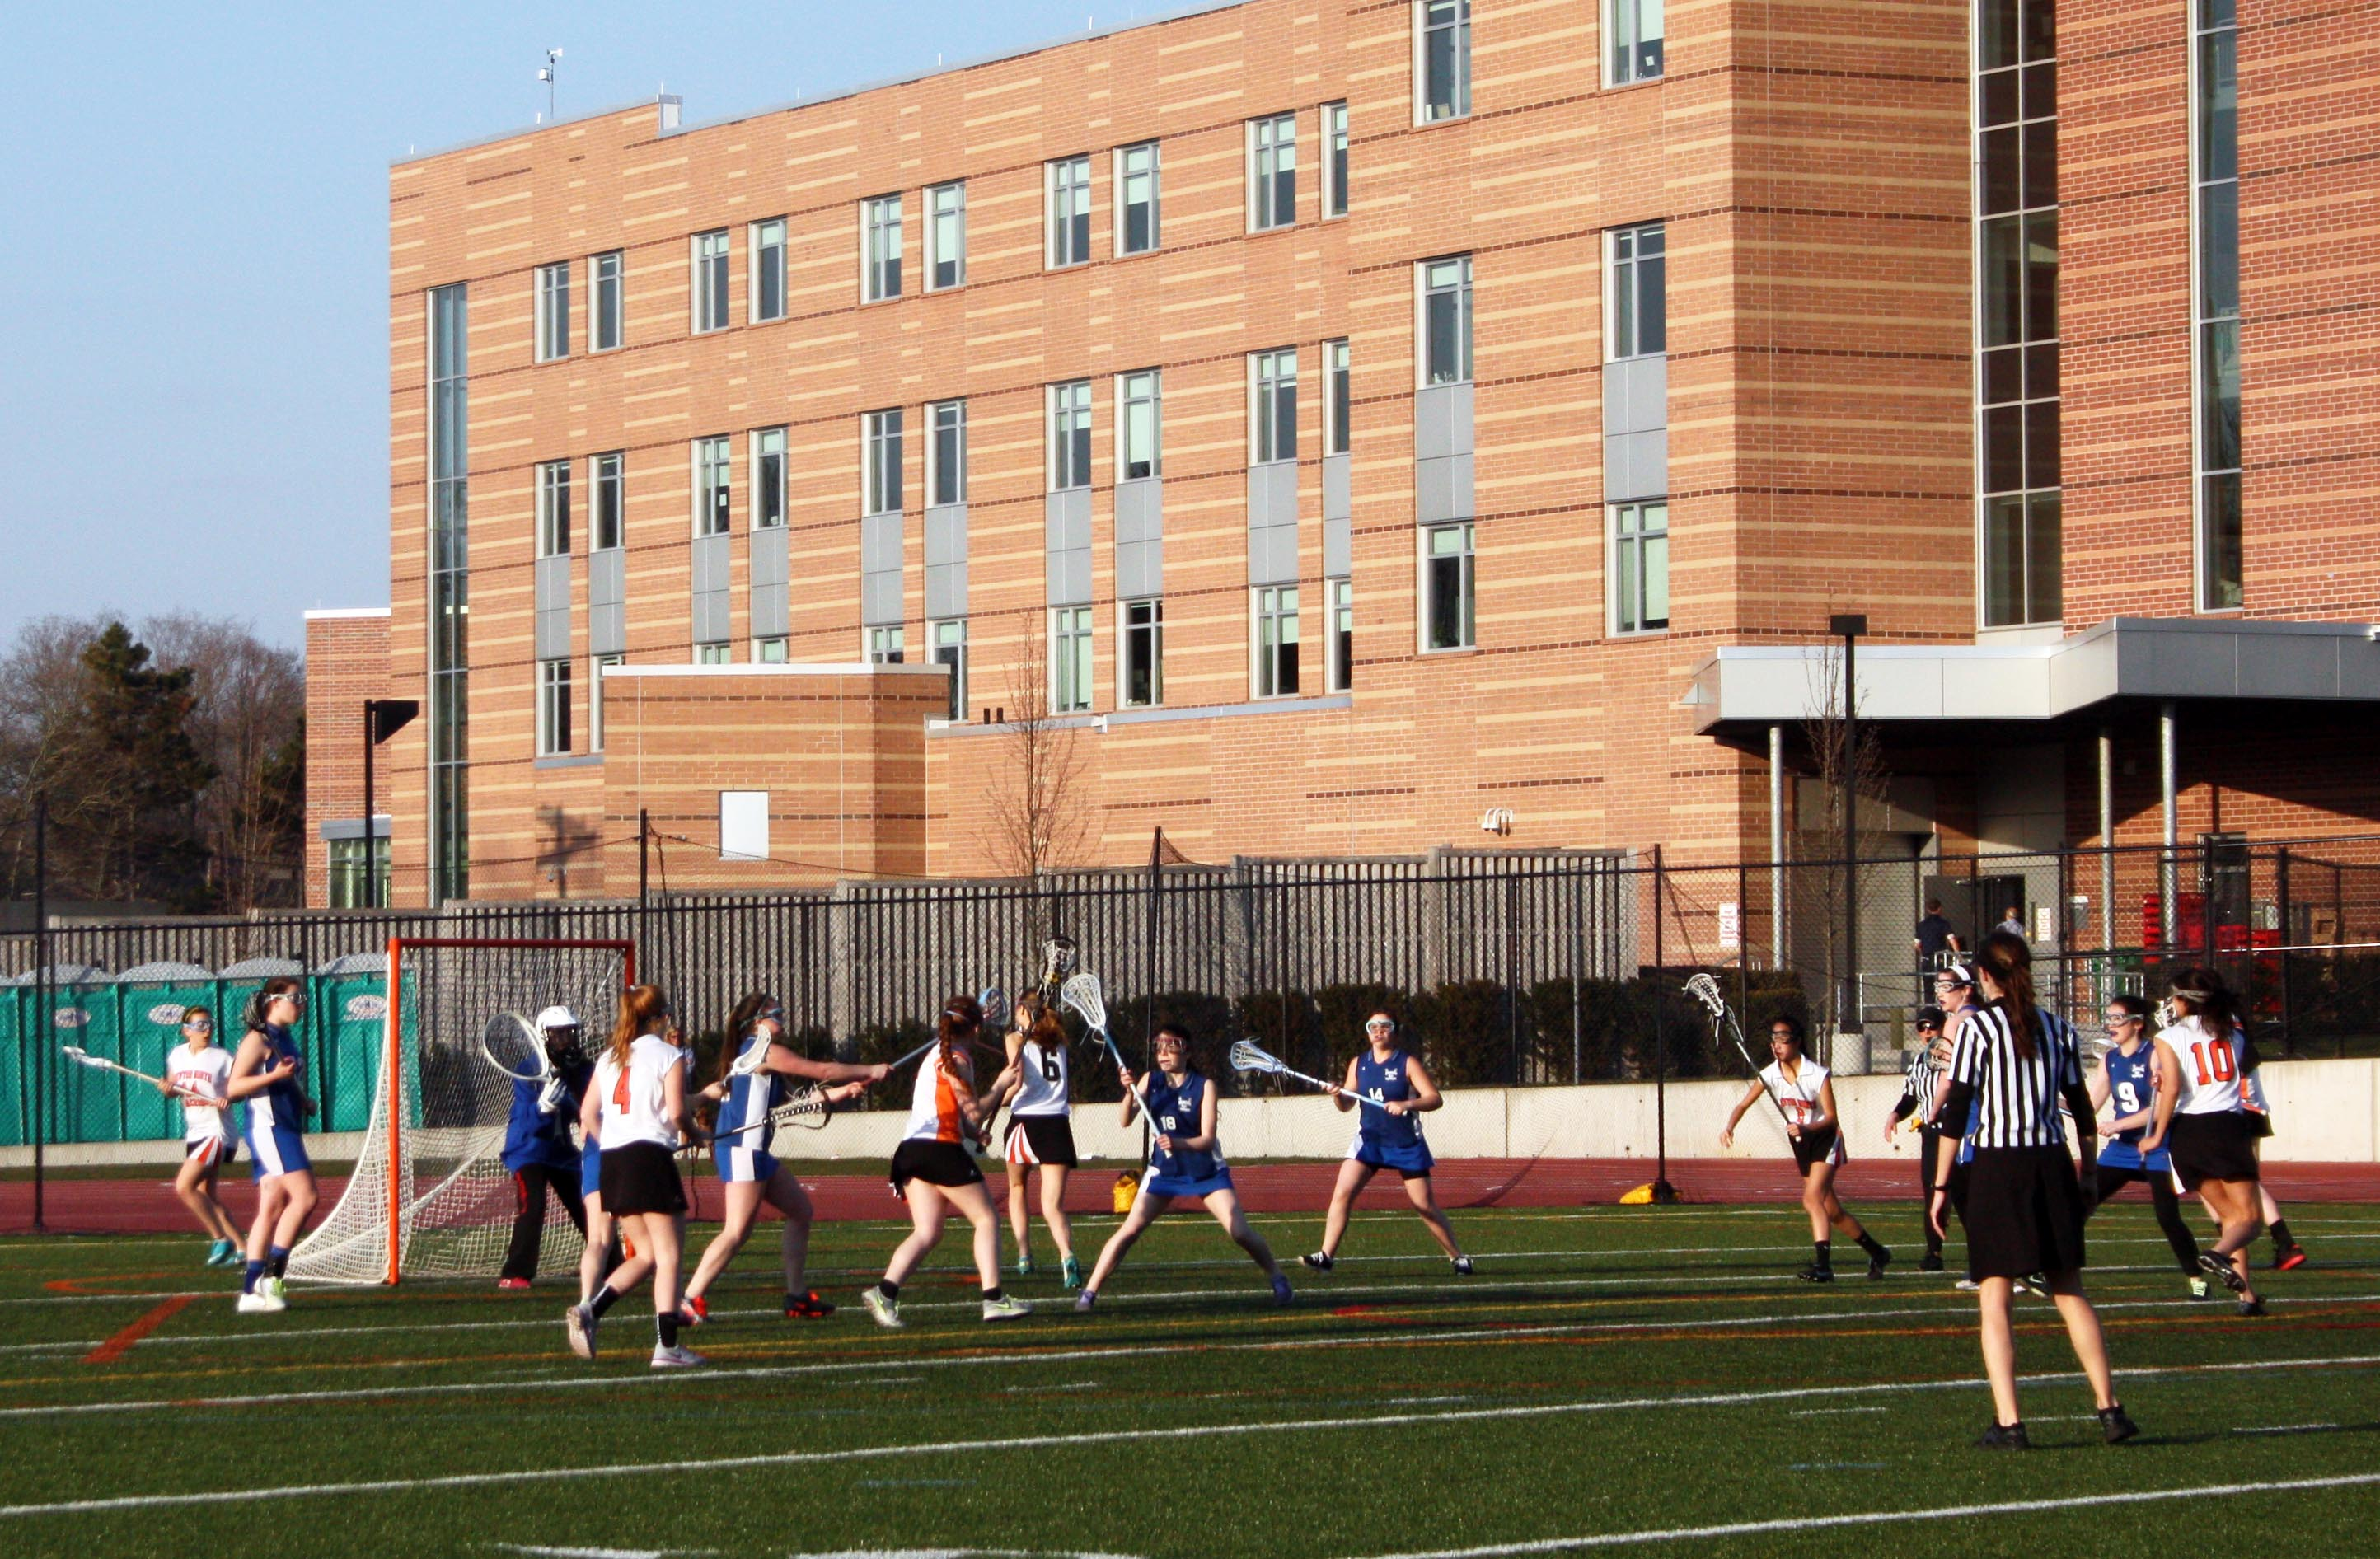 The Girls' Lacrosse team practices for a game.